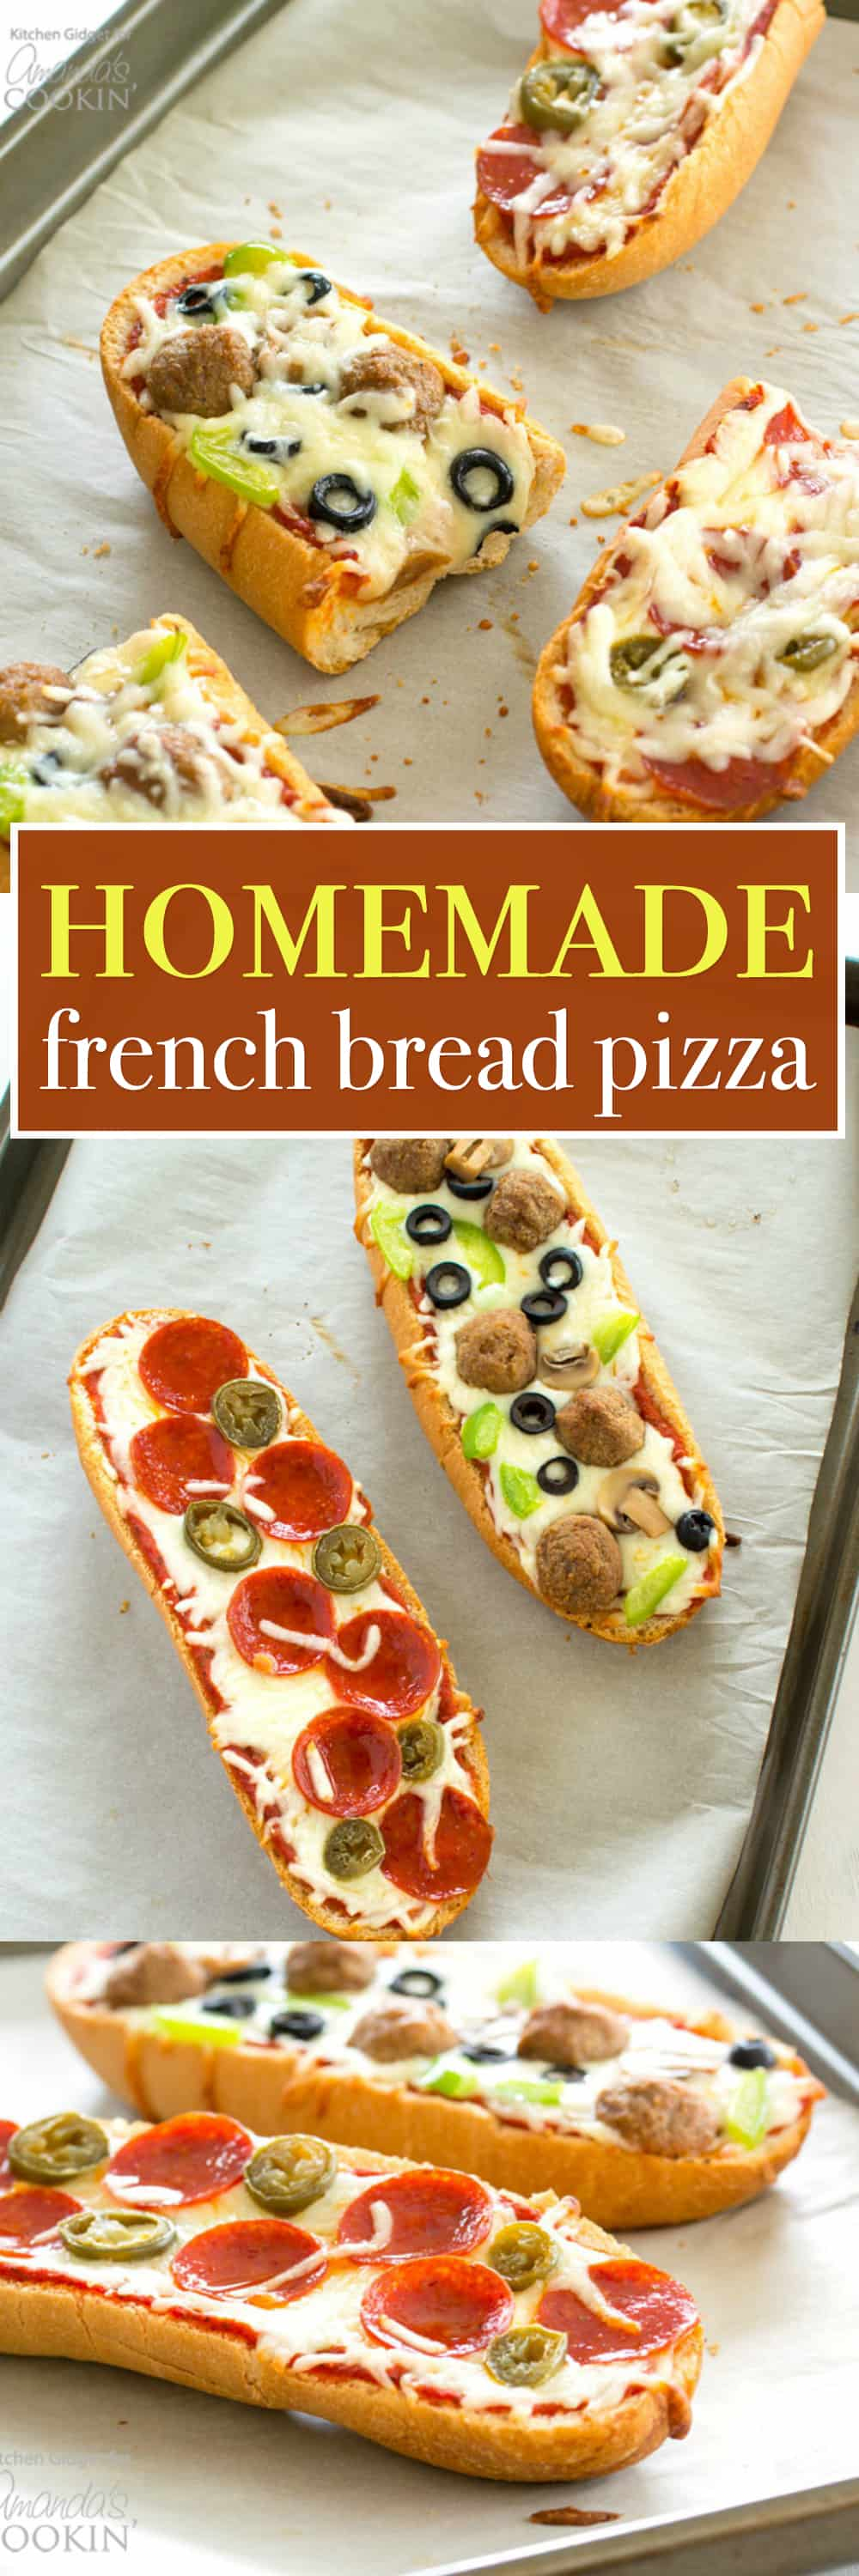 Ditch the frozen pizza and make this homemade French bread pizza that tastes a thousand times better. Pizza night is so easy when you use French bread for the crust. Plus, you can customize the toppings for a meal everyone will enjoy!